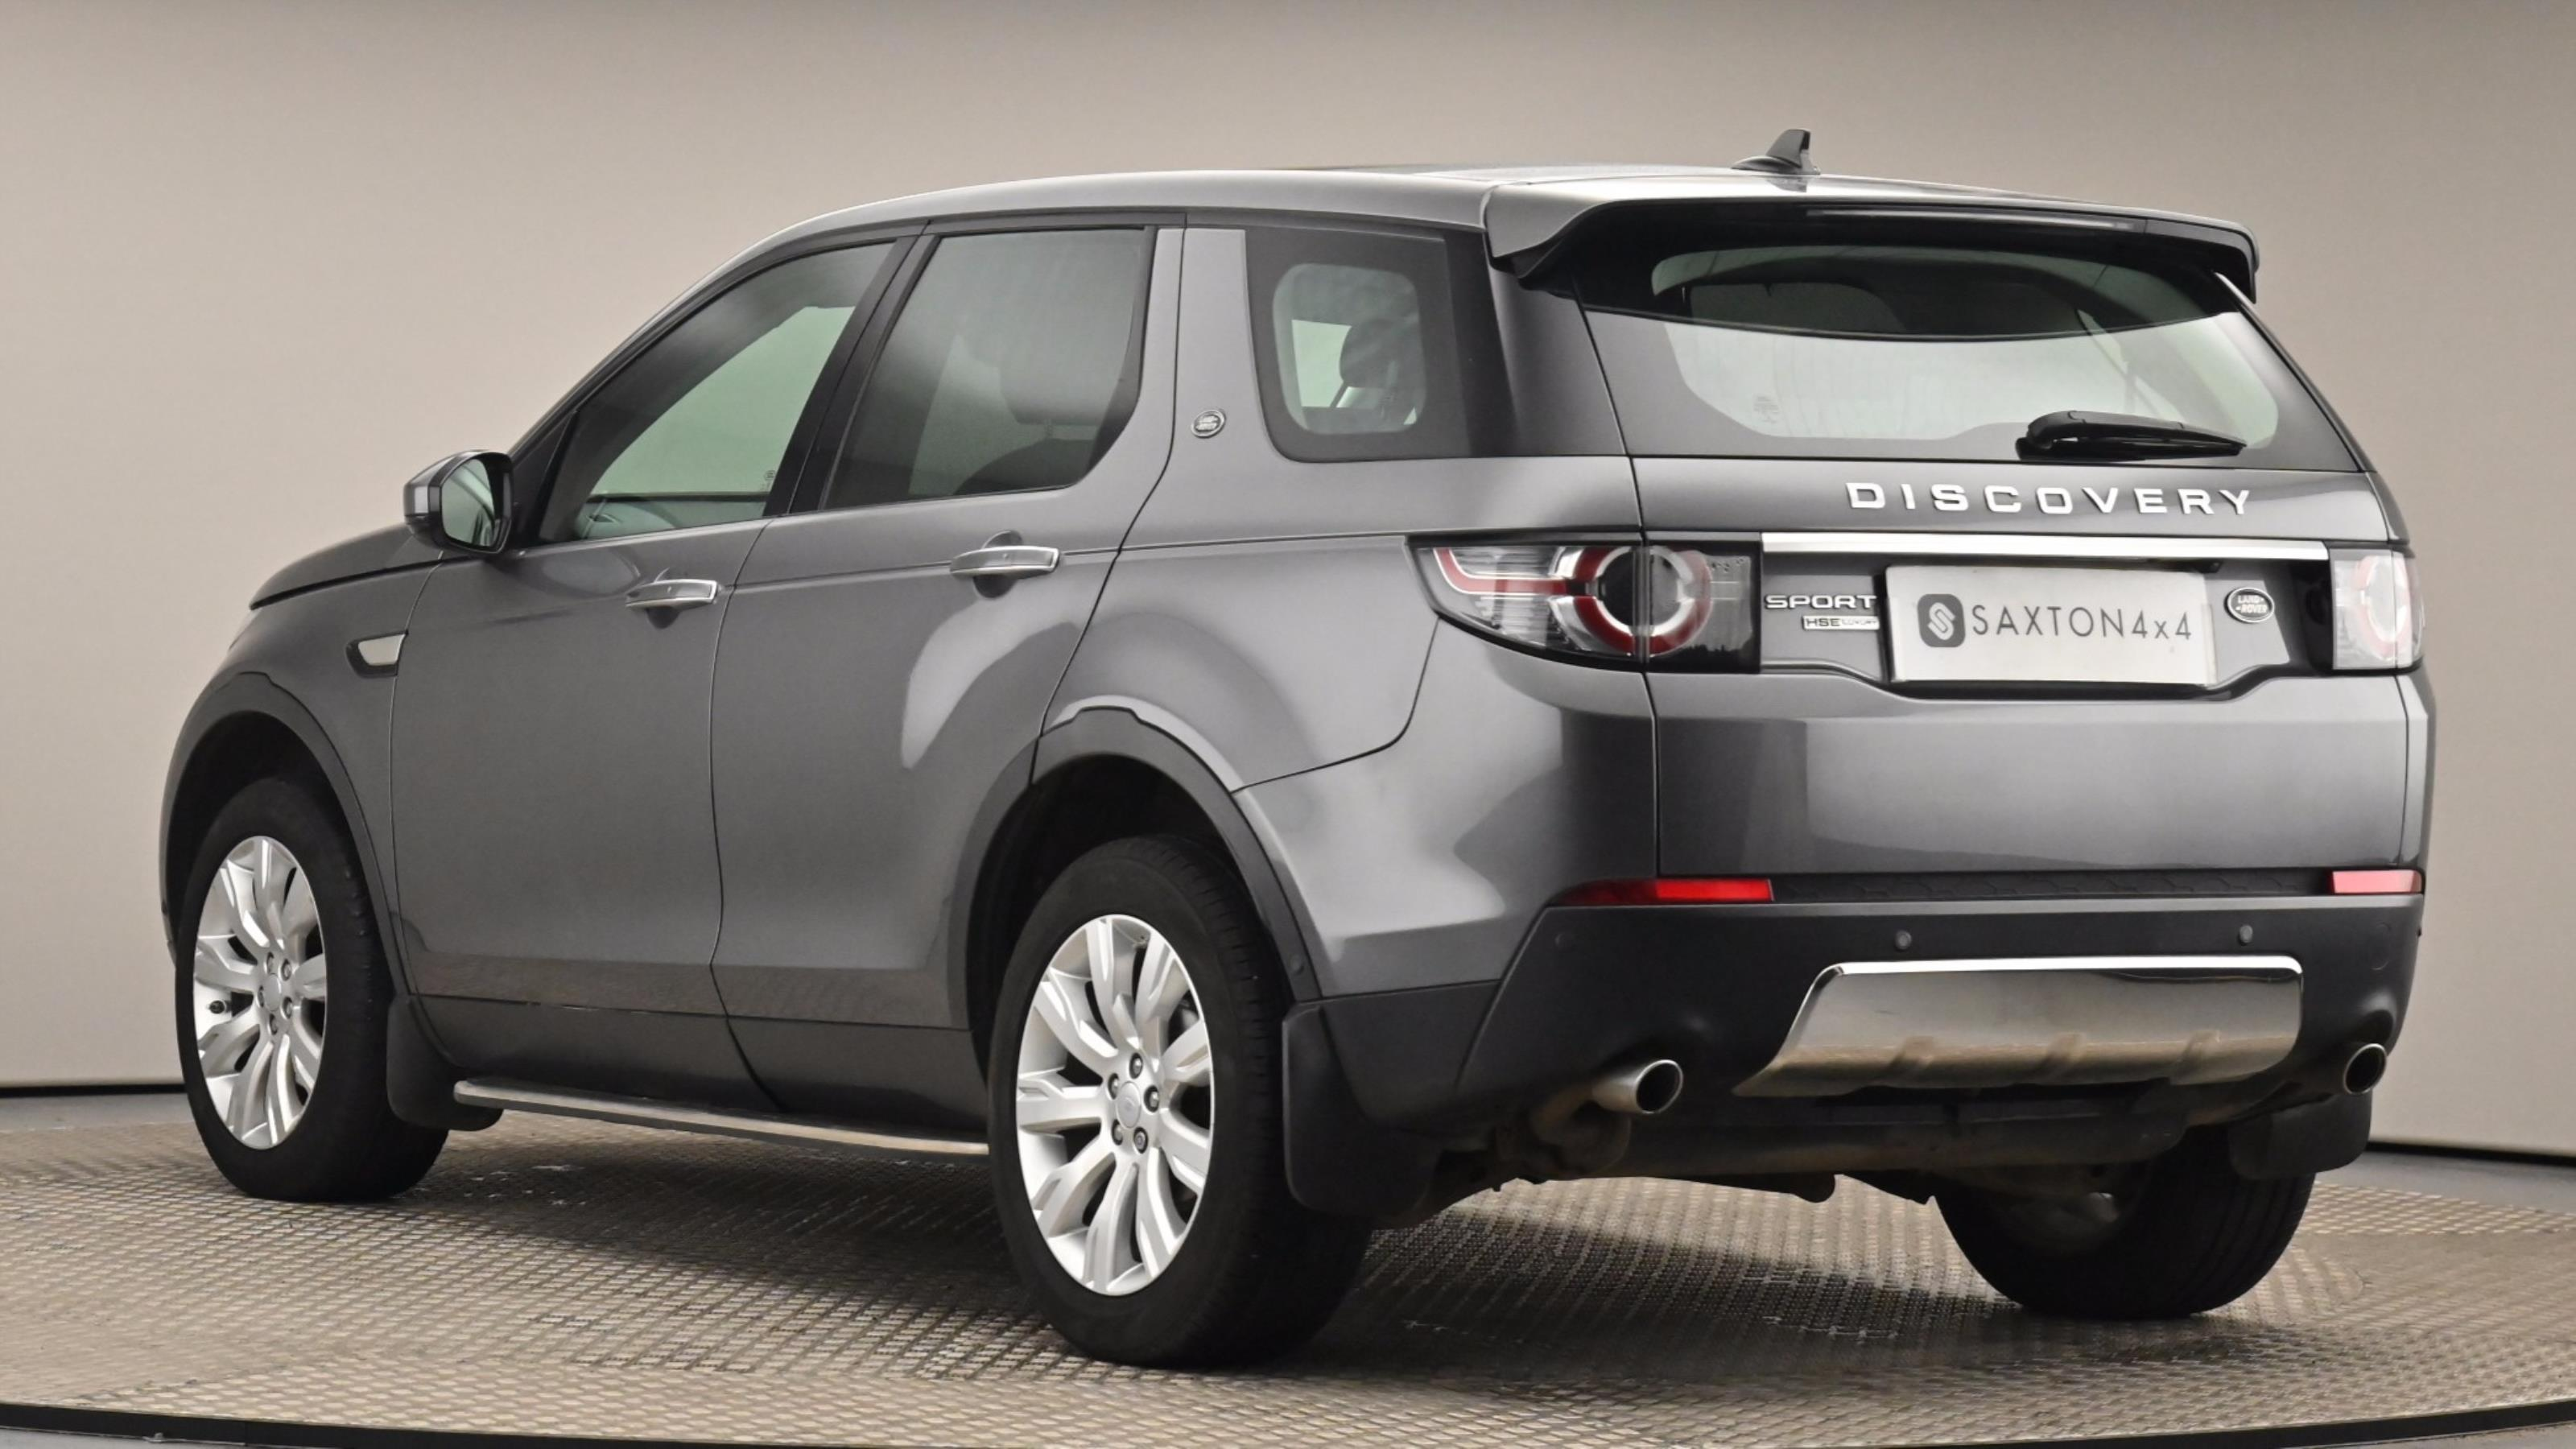 Used 2015 Land Rover DISCOVERY SPORT 2.2 SD4 HSE Luxury 5dr Grey at Saxton4x4